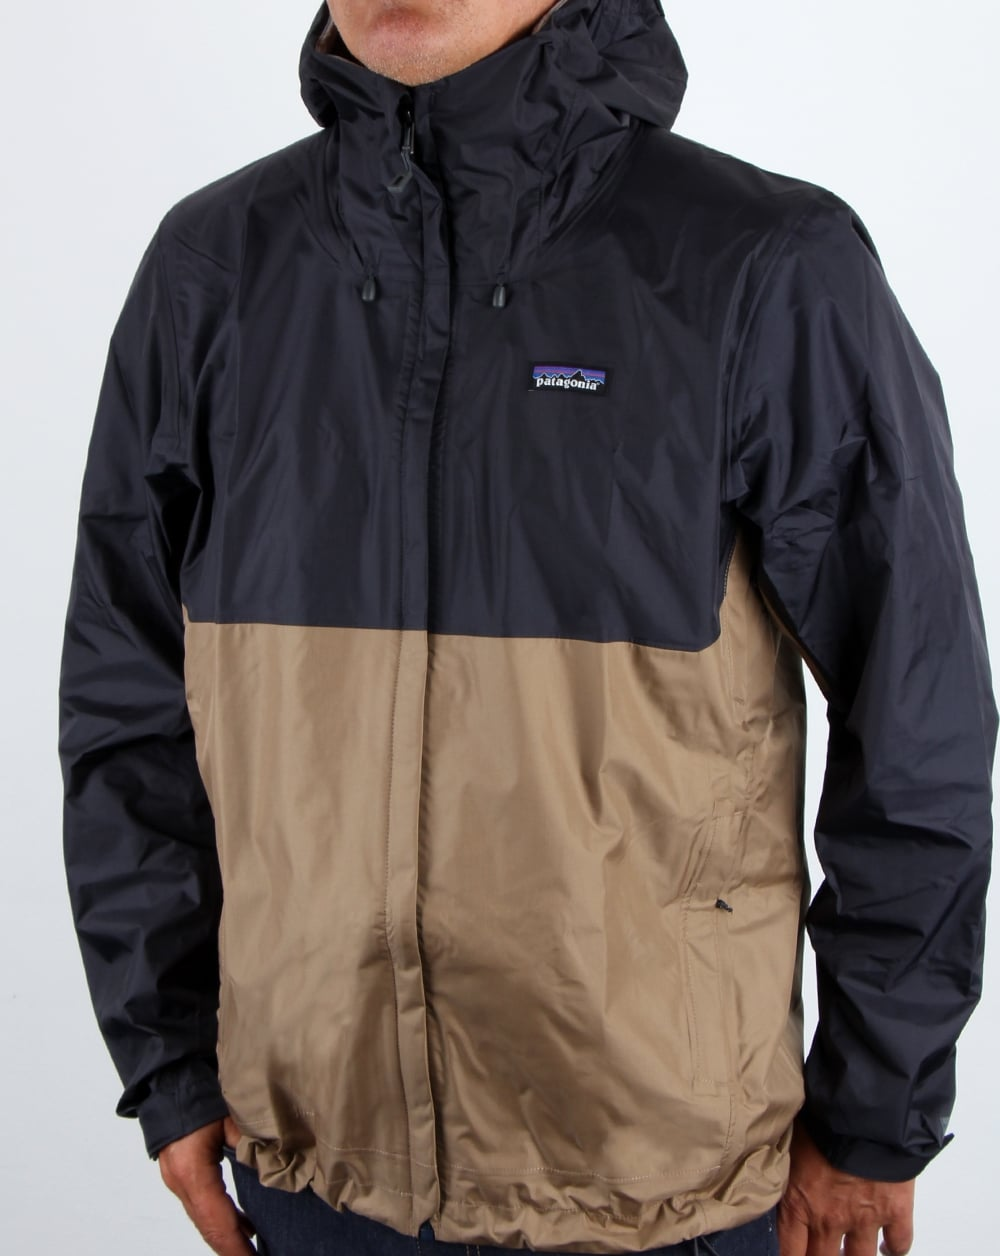 quality products 60% discount another chance Patagonia Torrentshell Jacket Smoulder Blue